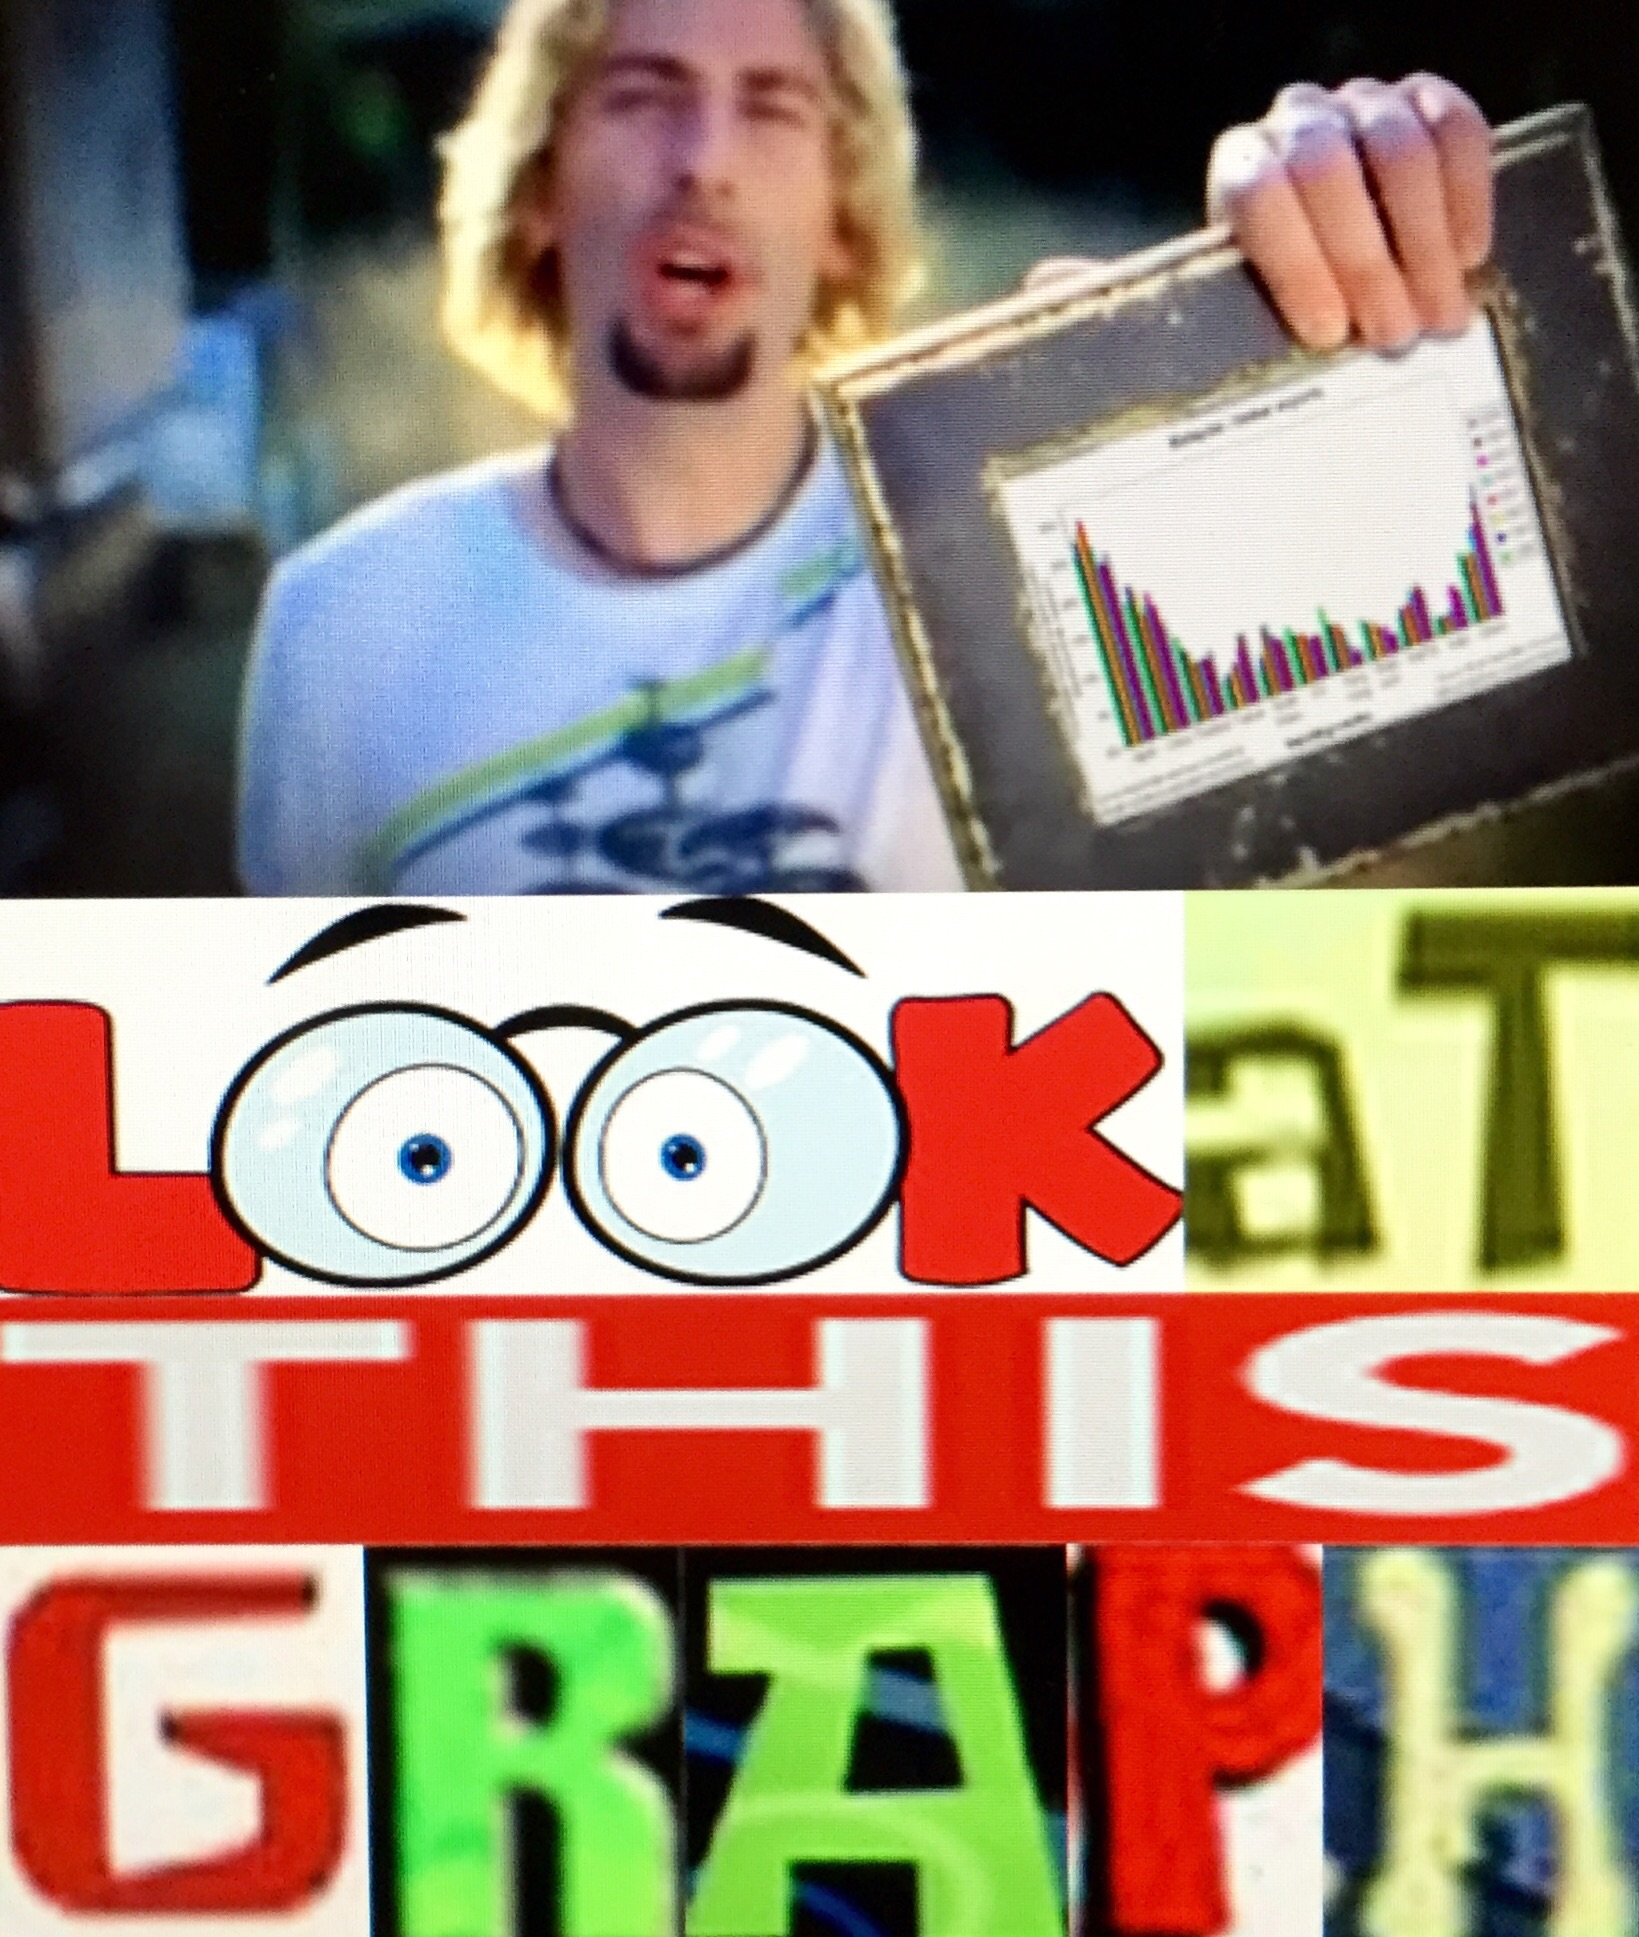 000 look at this graph nickelback \